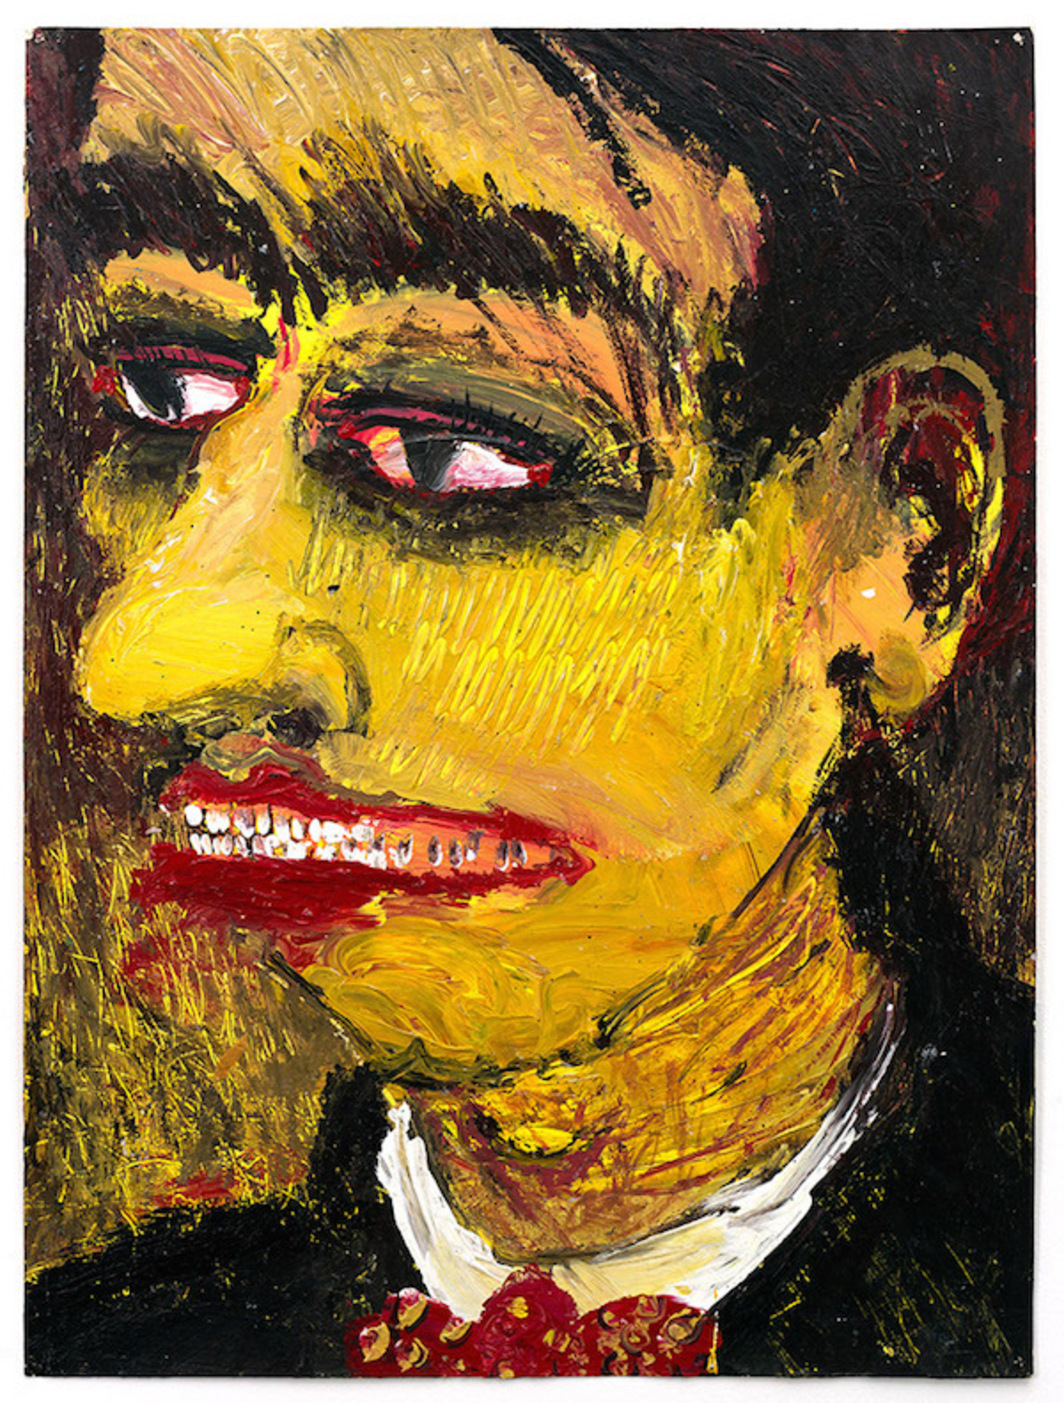 "Tabboo!, Self-Portrait, 1982, acrylic on found advertising paper, 27 x 20"". Photo: Max Lee."